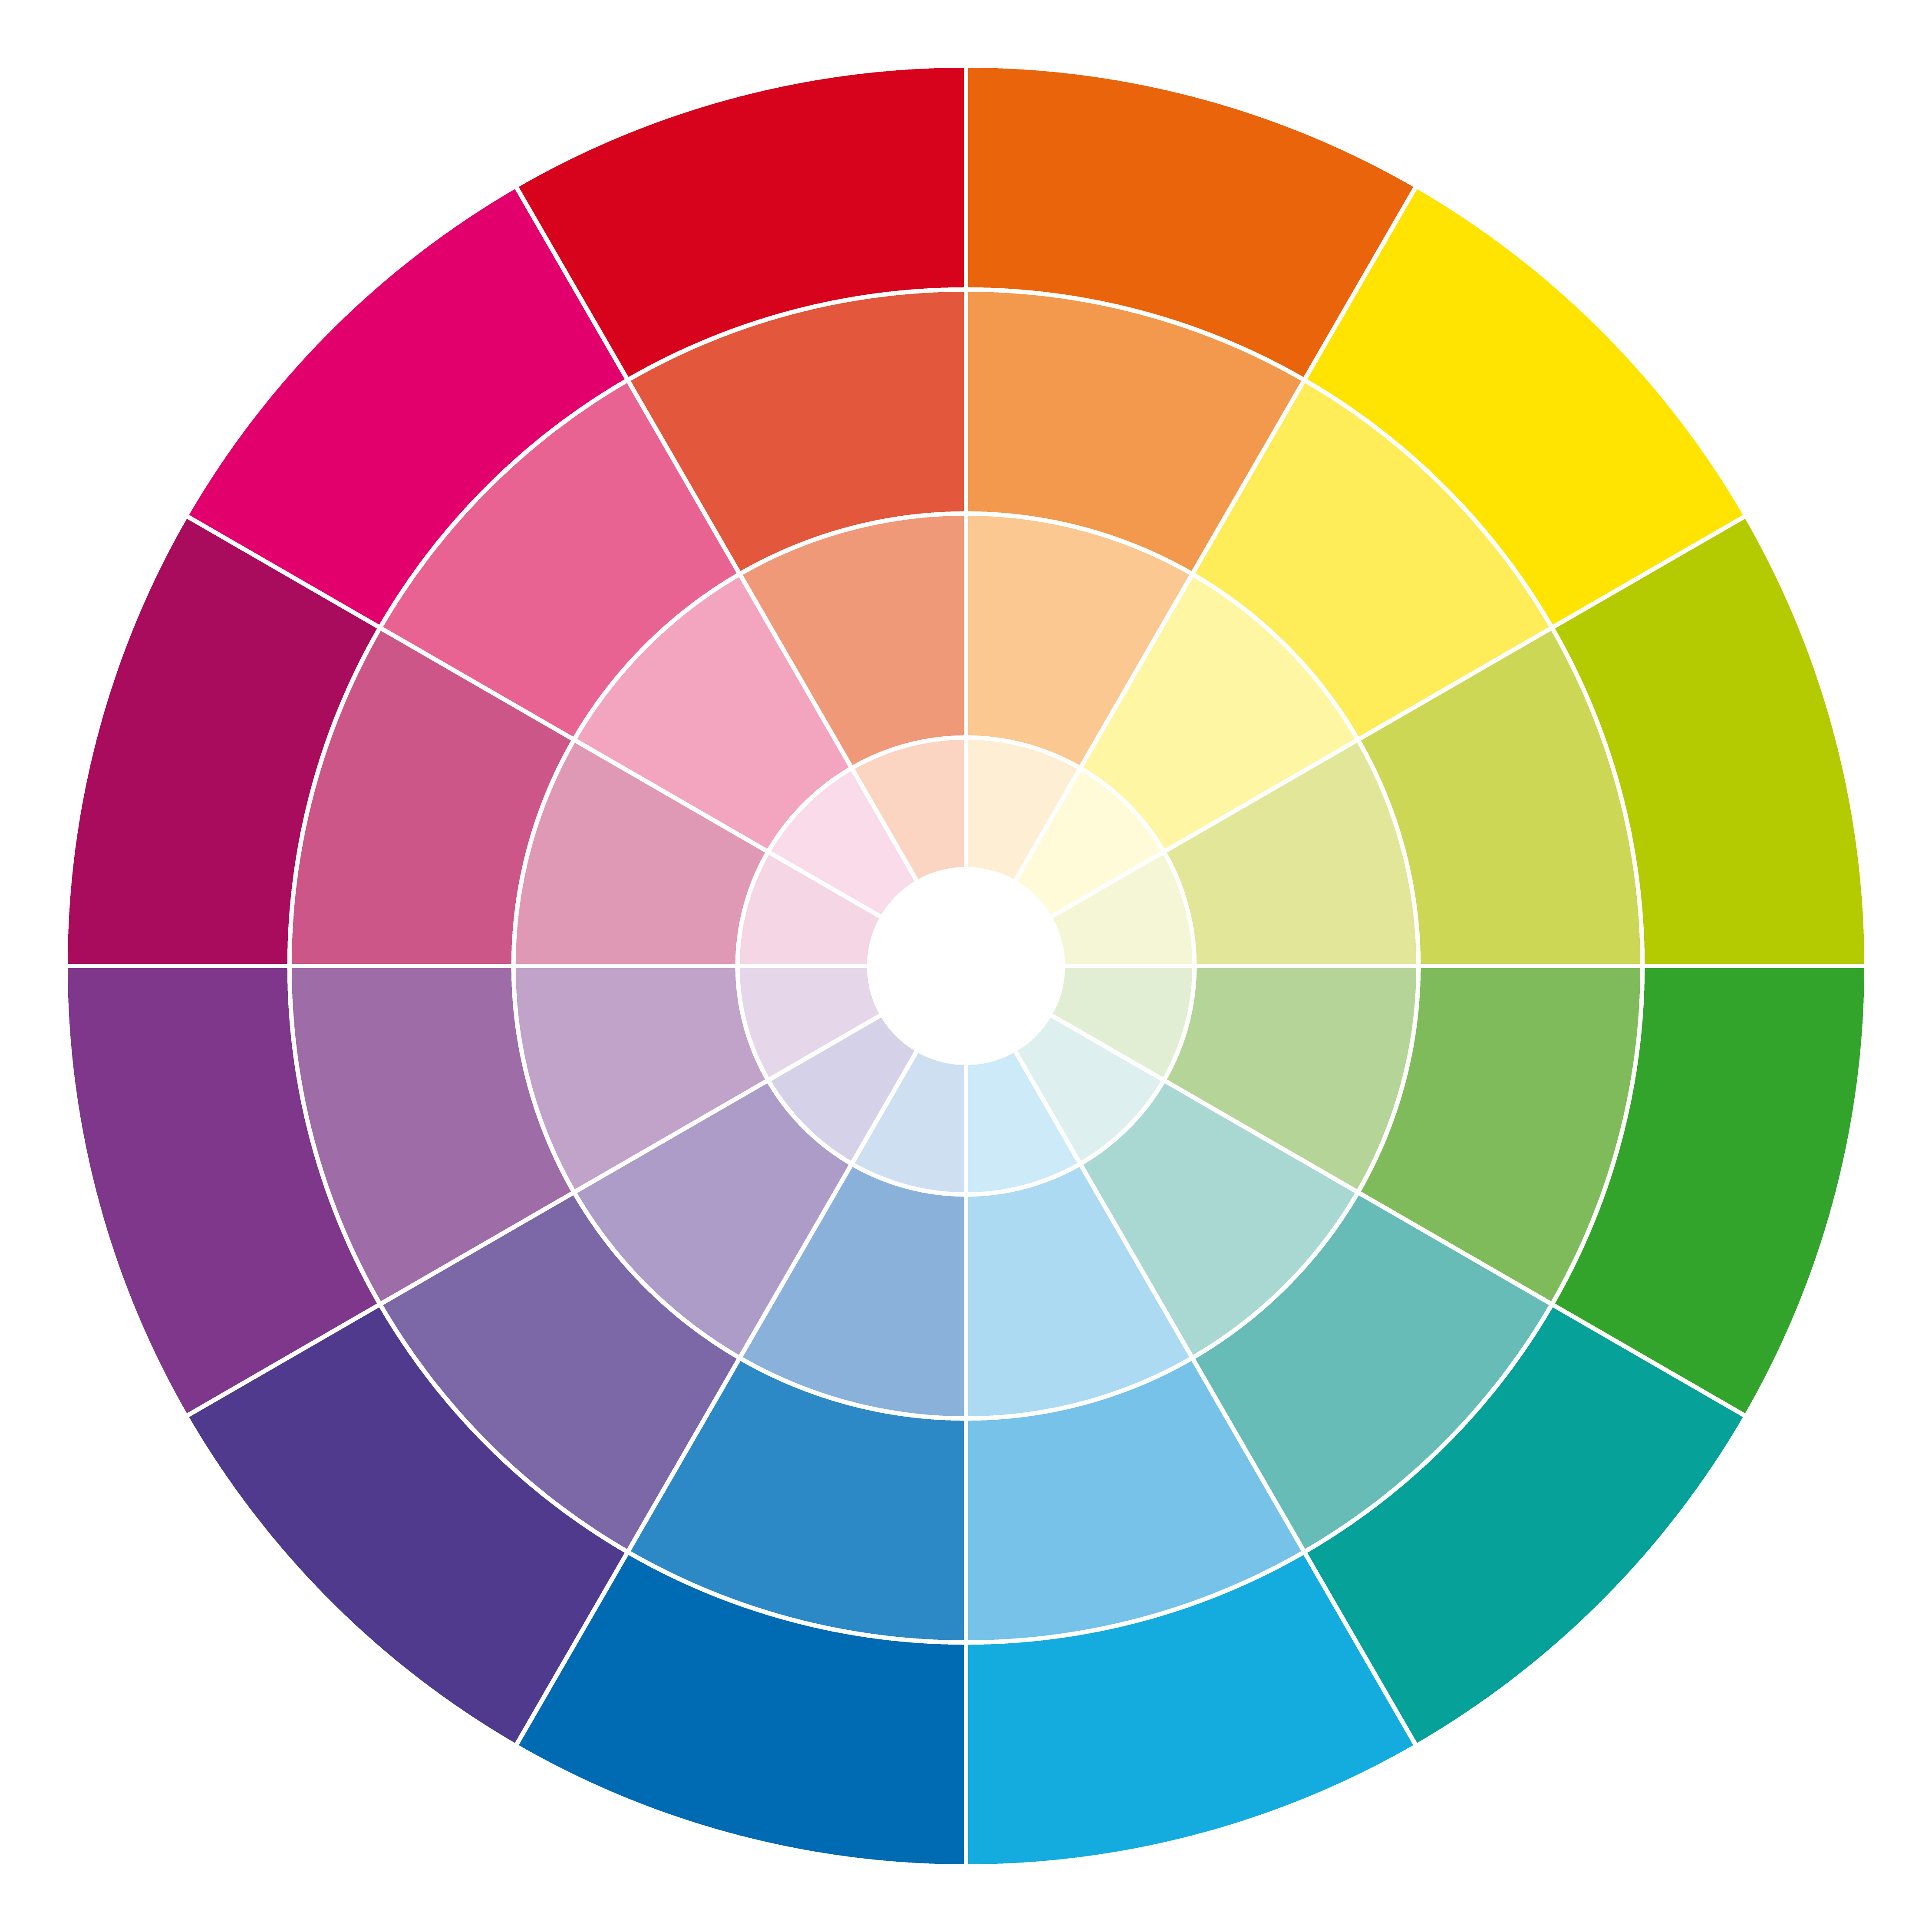 image of a colour wheel showing different shades of primary, secondary and tertiary colours